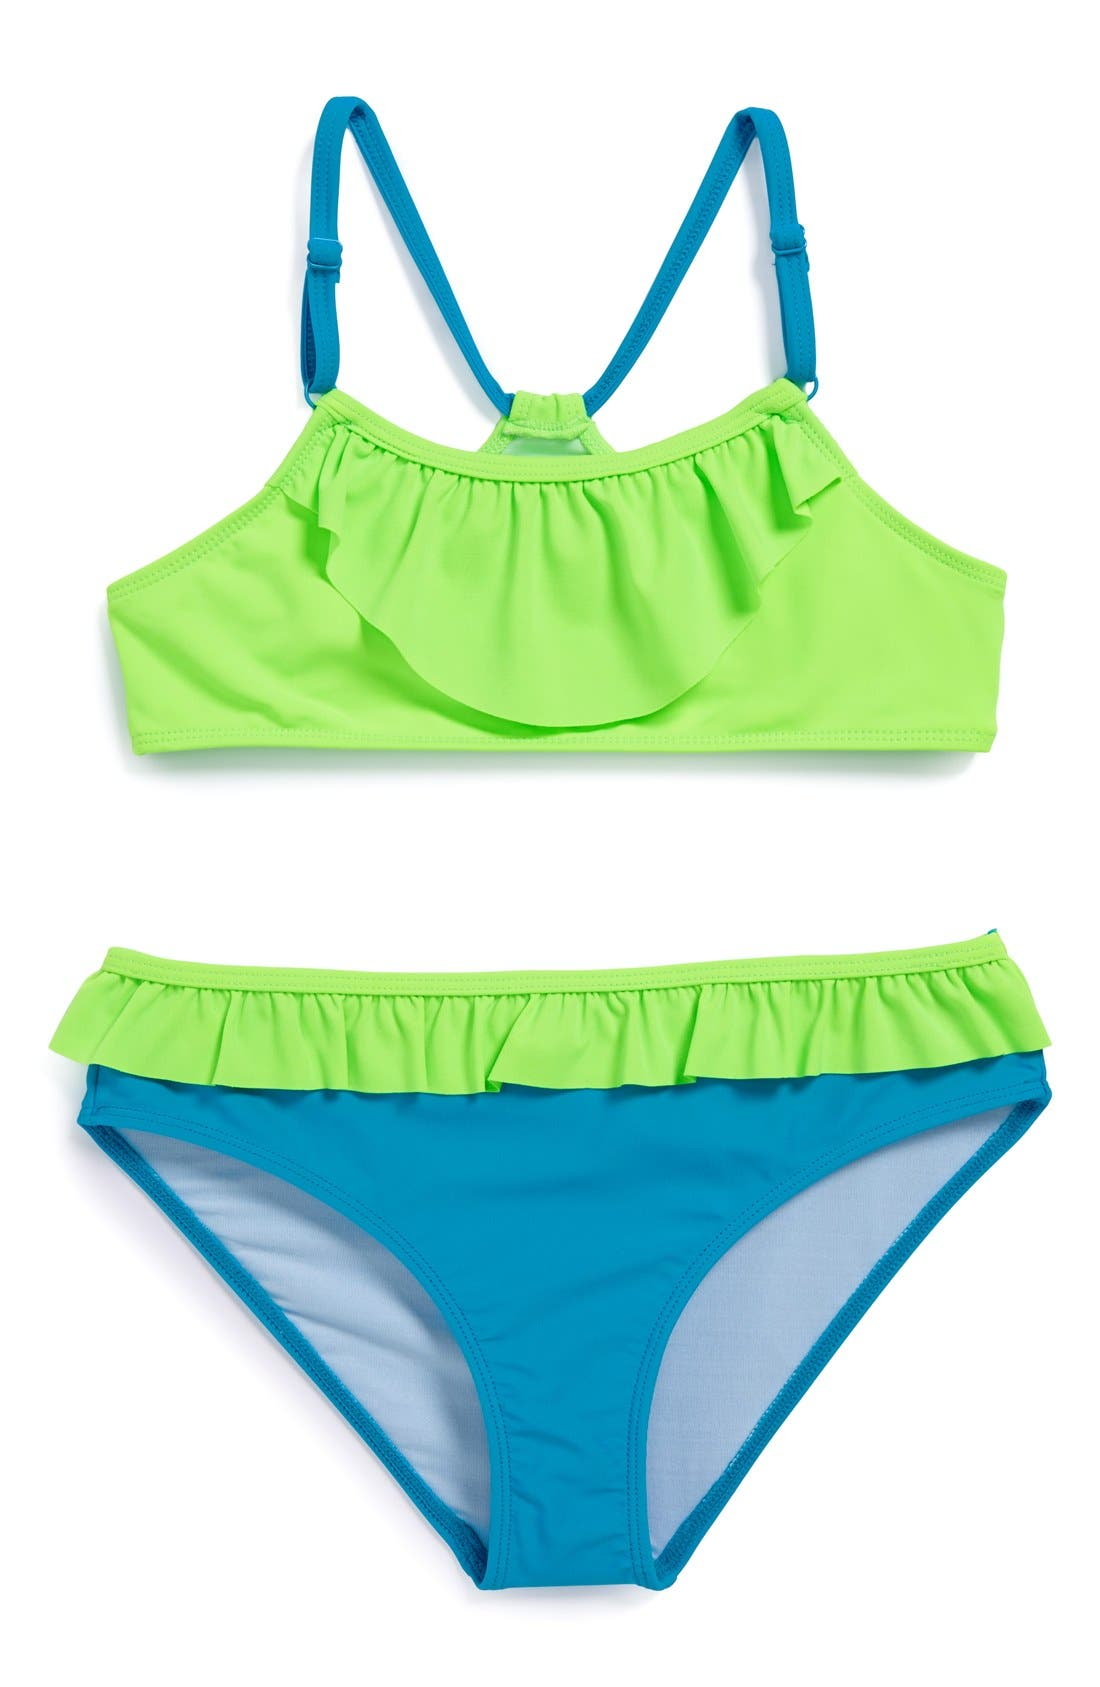 Main Image - Tucker + Tate 'Sunny' Two-Piece Swimsuit (Little Girls & Big Girls)